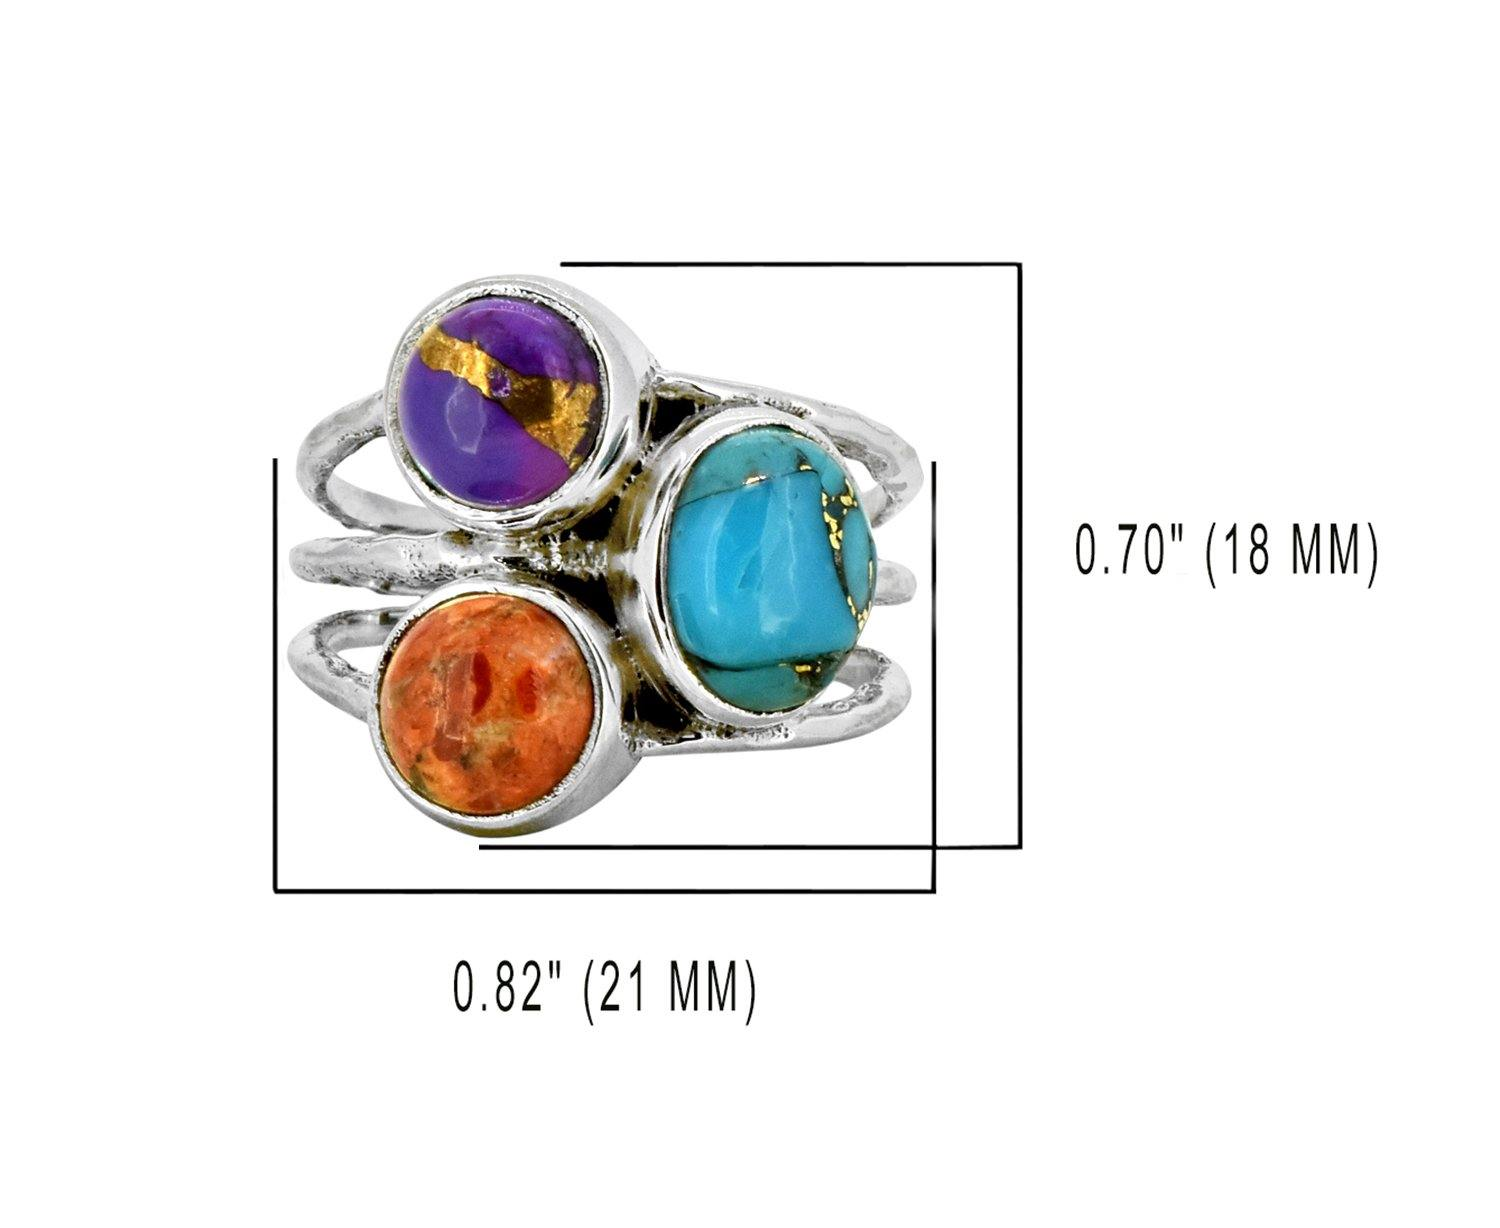 YoTreasure Blue Copper Turquoise Solid 925 Sterling Silver Designer Ring Sizes 5,6,7,8,9,10